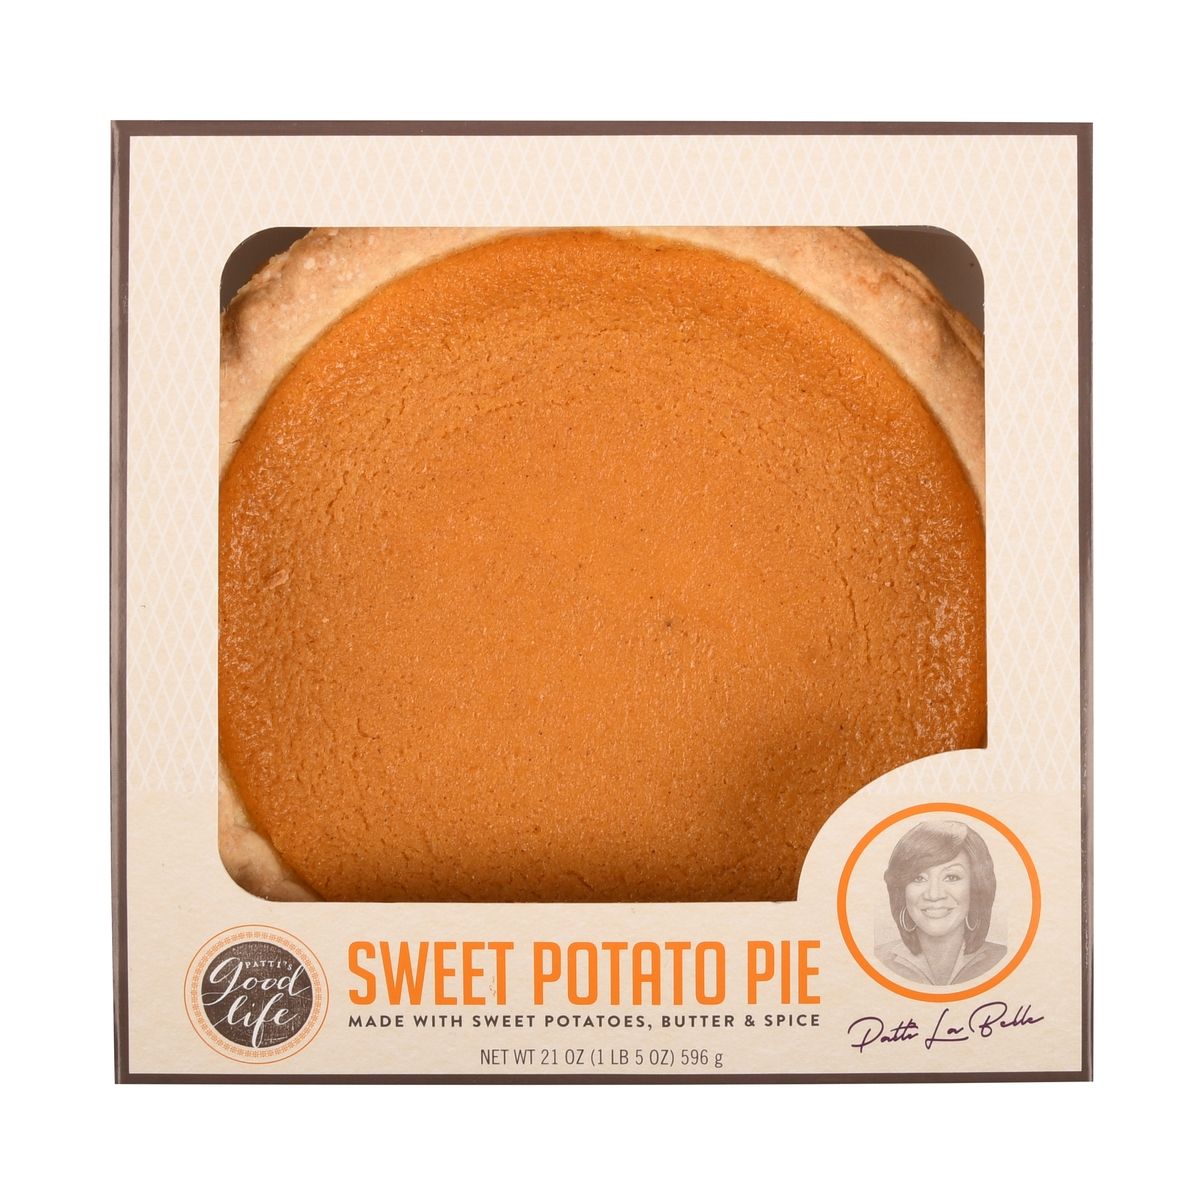 Patti's Good Life Sweet Potato Pie